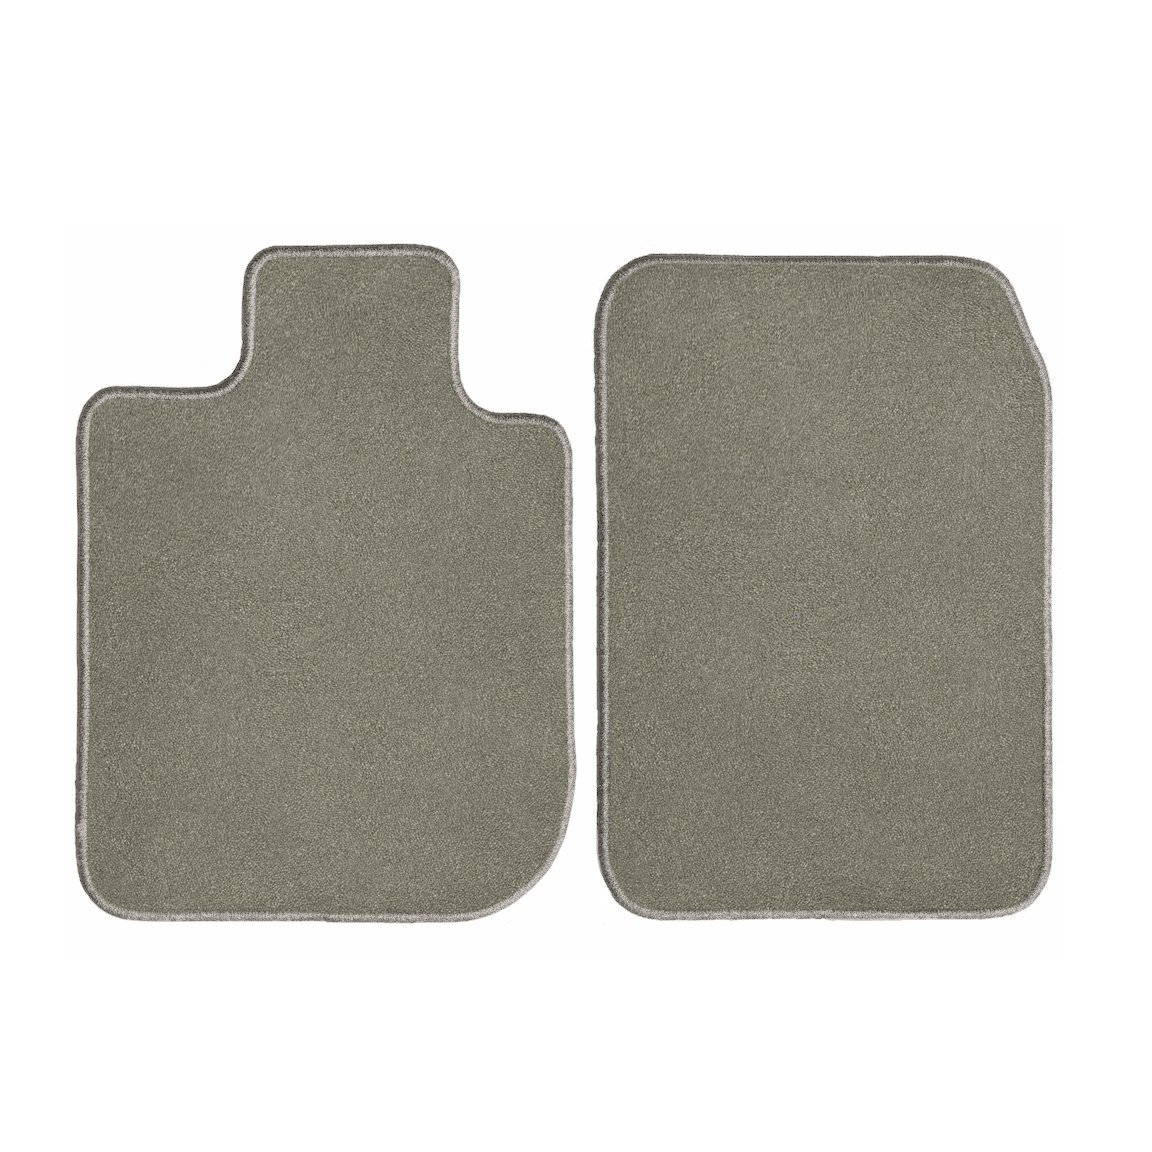 2012 Ford Fusion Sedan Grey Driver /& Passenger Floor 2011 GGBAILEY D60037-F1A-GY Custom Fit Car Mats for 2010